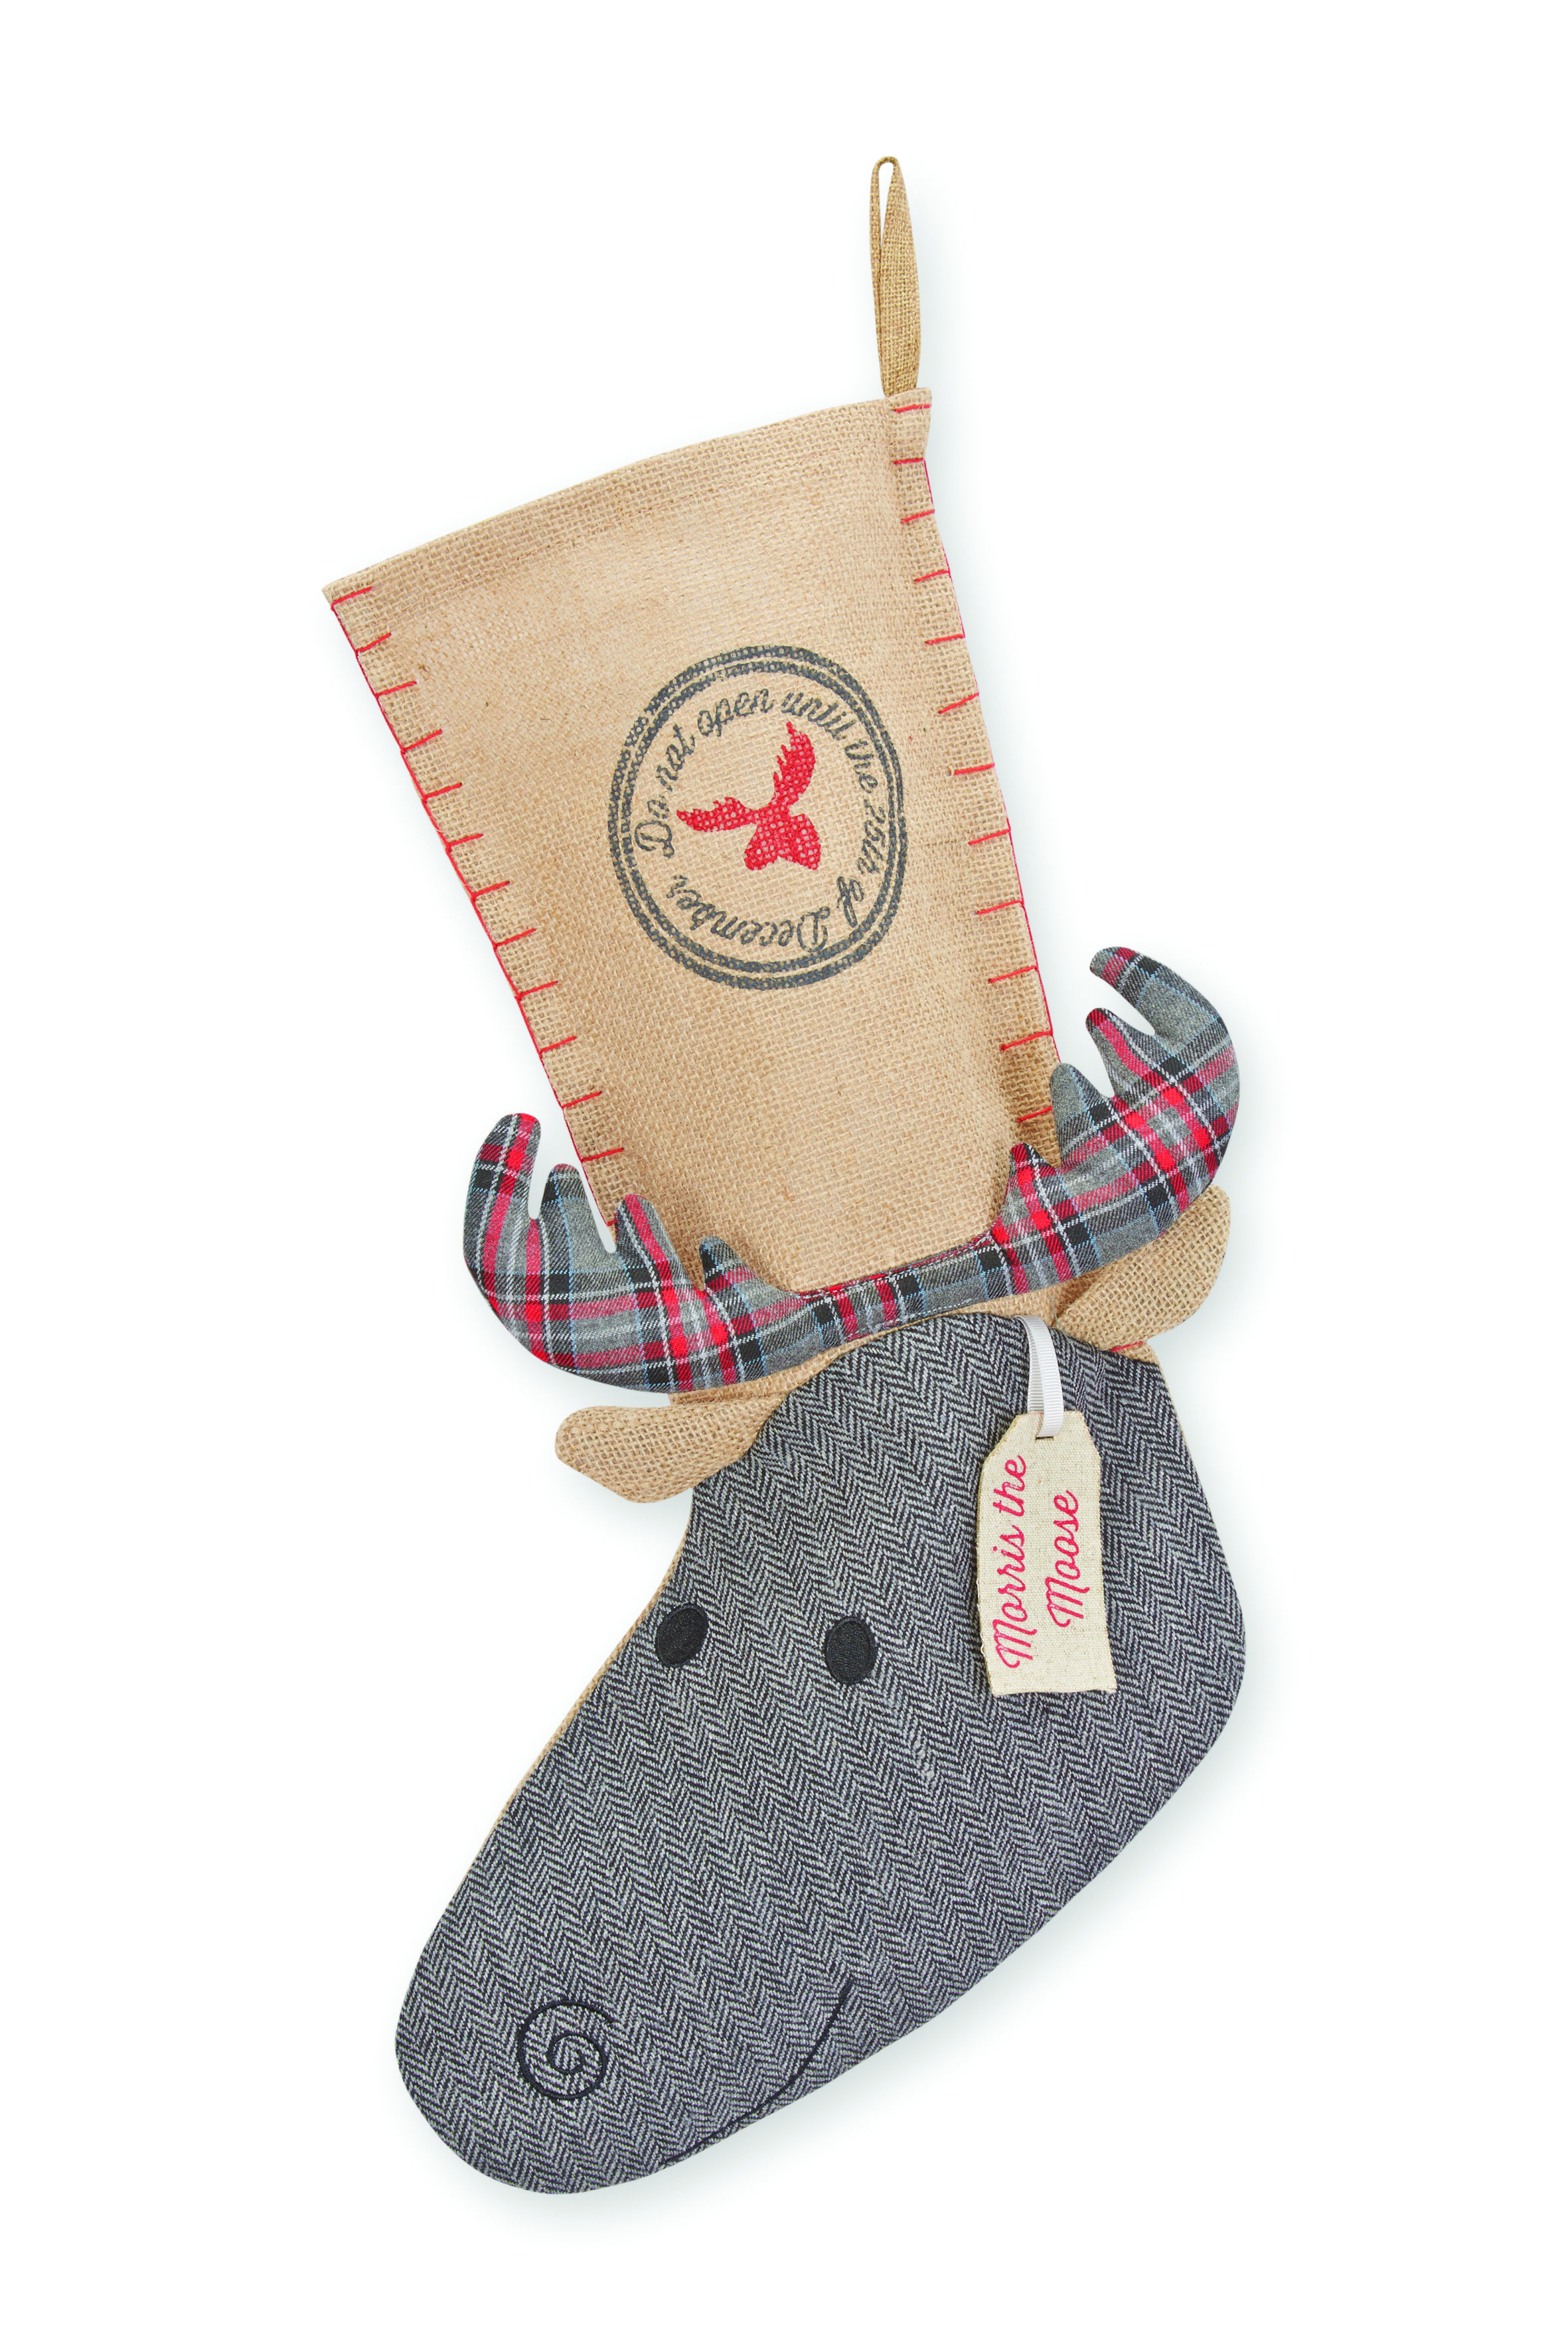 Moose stocking from Next